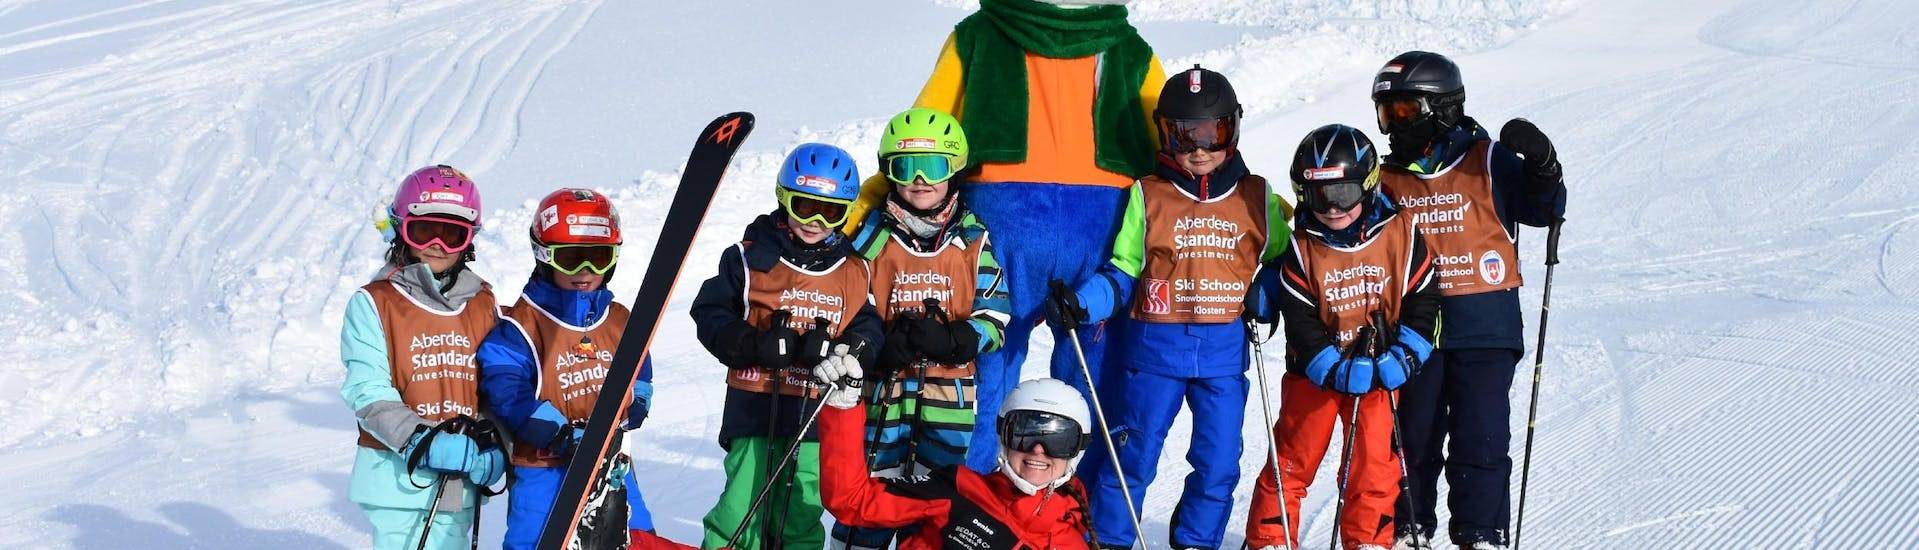 Kids Ski Lessons (from 3 y.) for Beginners